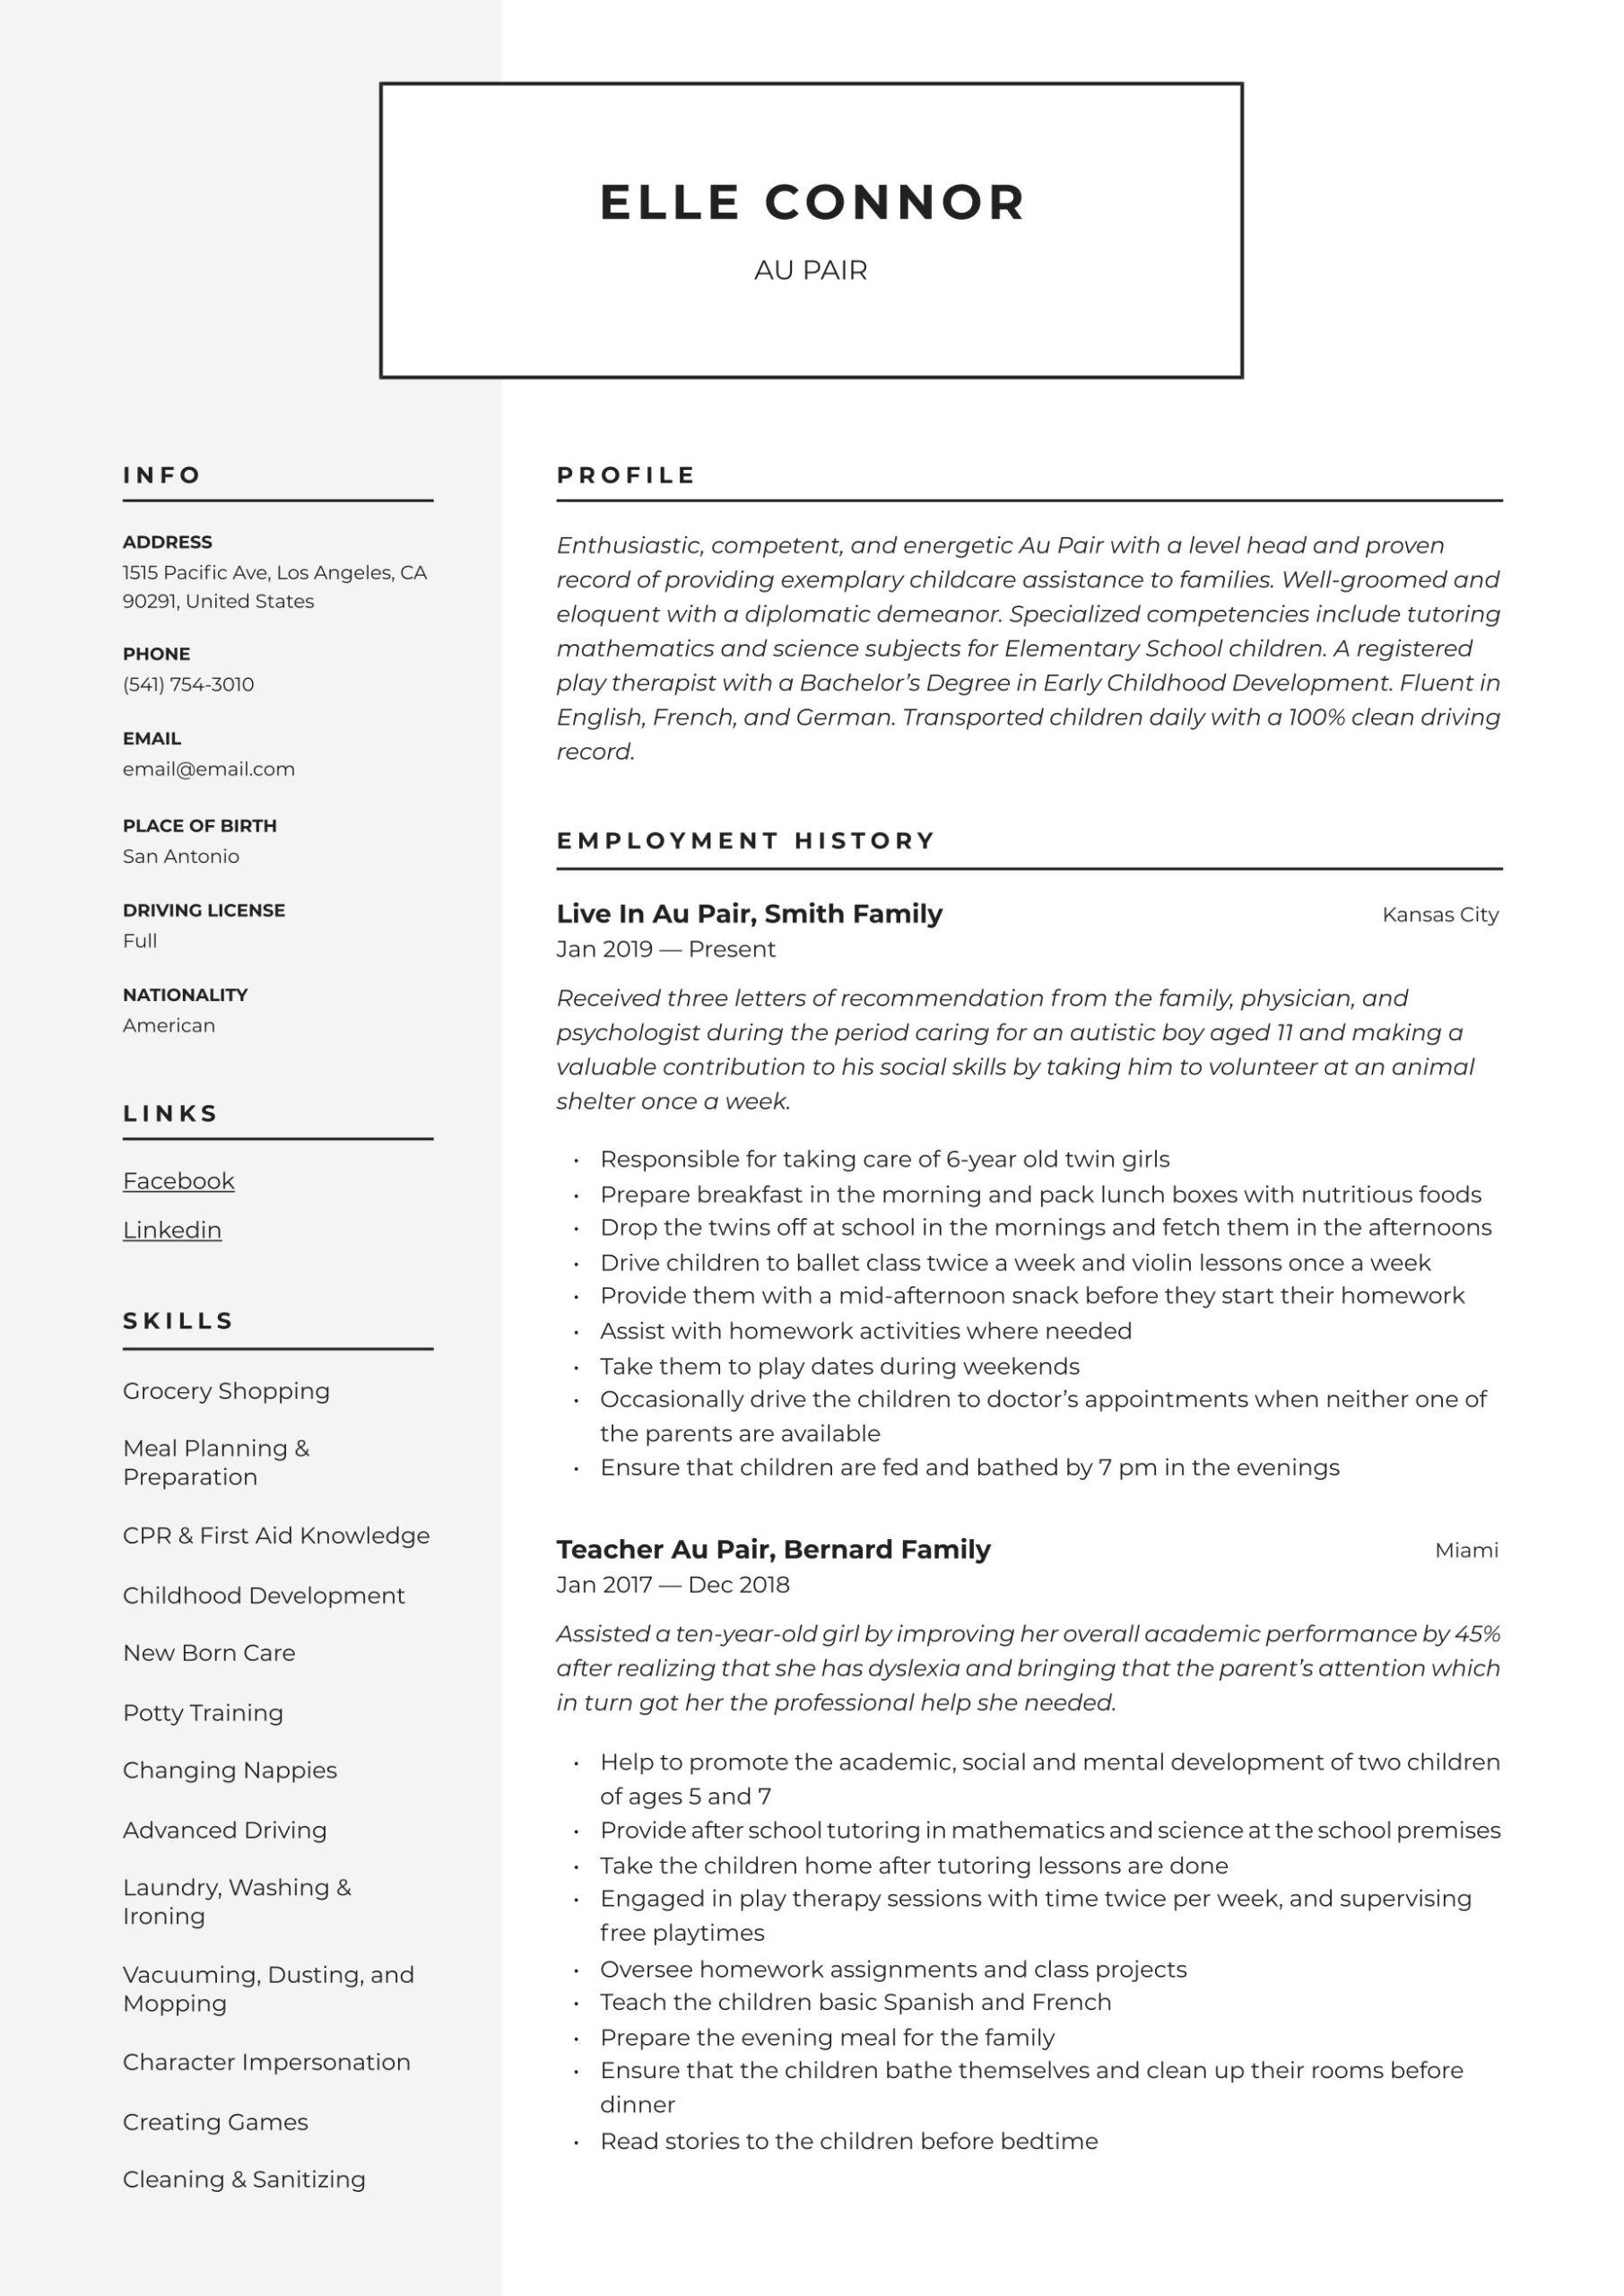 au pair resume writing guide templates australian style examples cater waiter graduate Resume Resume Writing Australian Style Examples